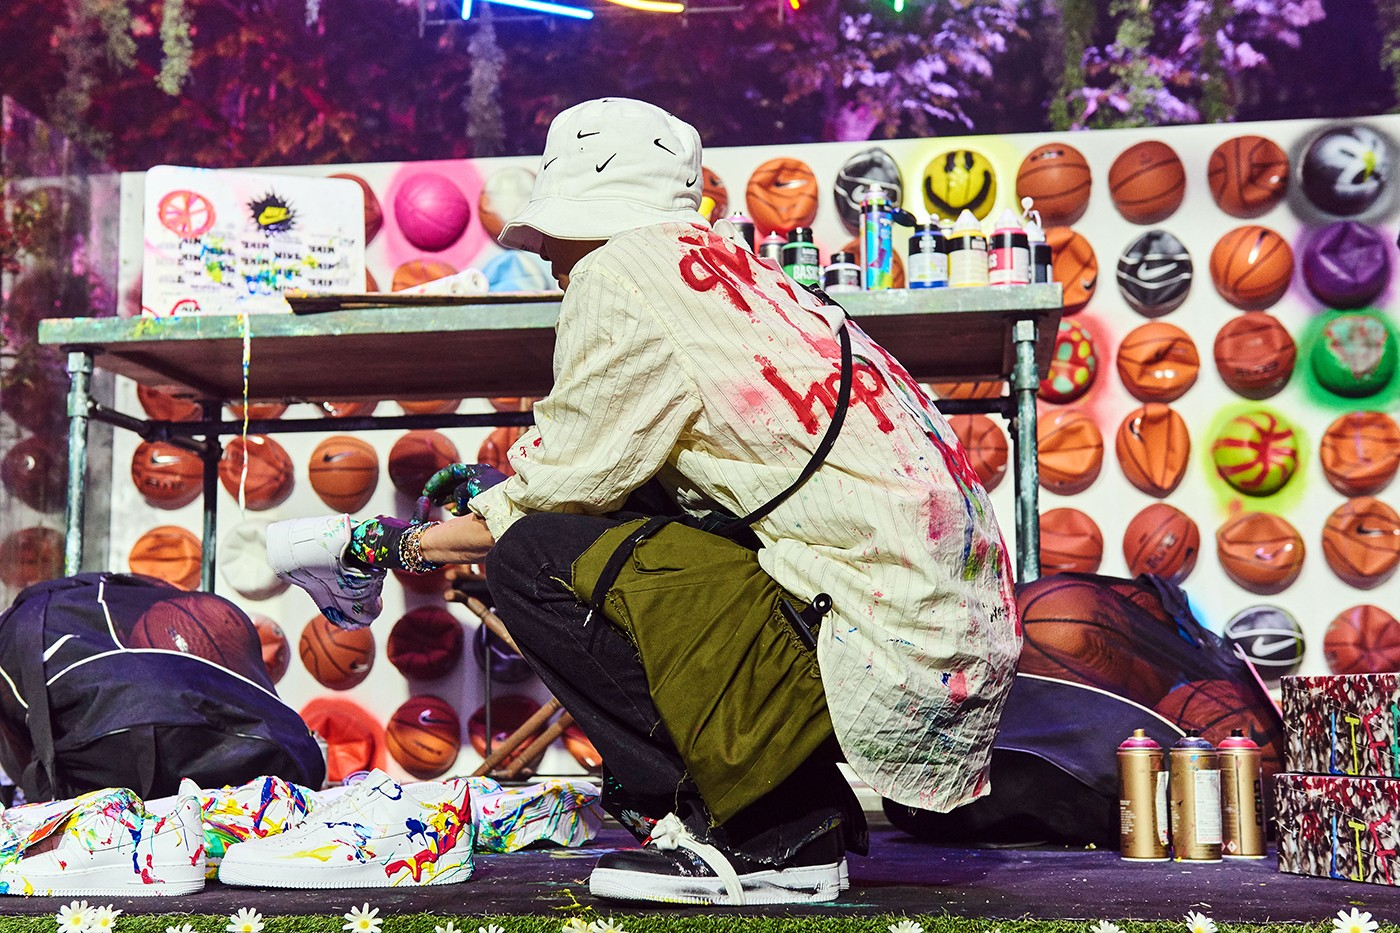 G-Dragon PEACEMINUSONE Nike Air Force 1 Para-Noise Launch seoul interview live art performance